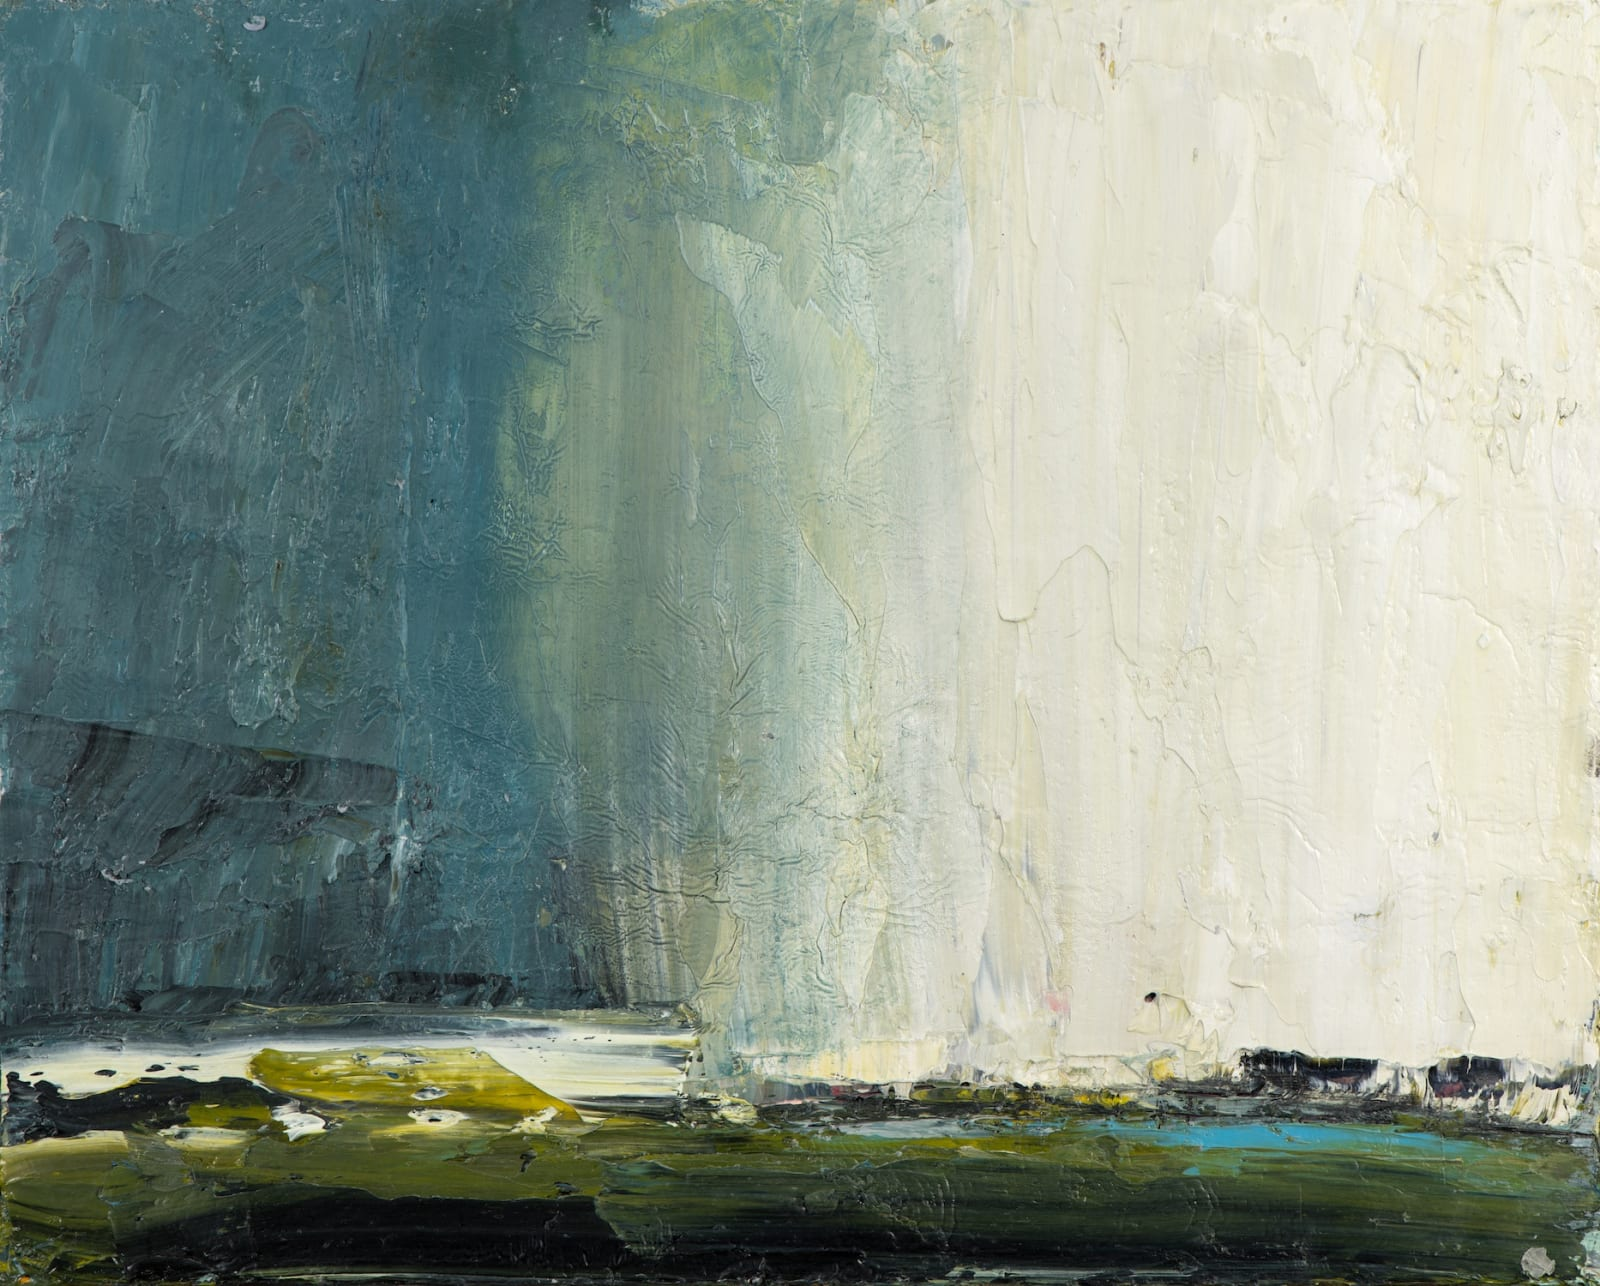 Carol Hodder, Coming Rain, oil on canvas, 40 x 50cm Artwork images courtesy of Rob Lamb